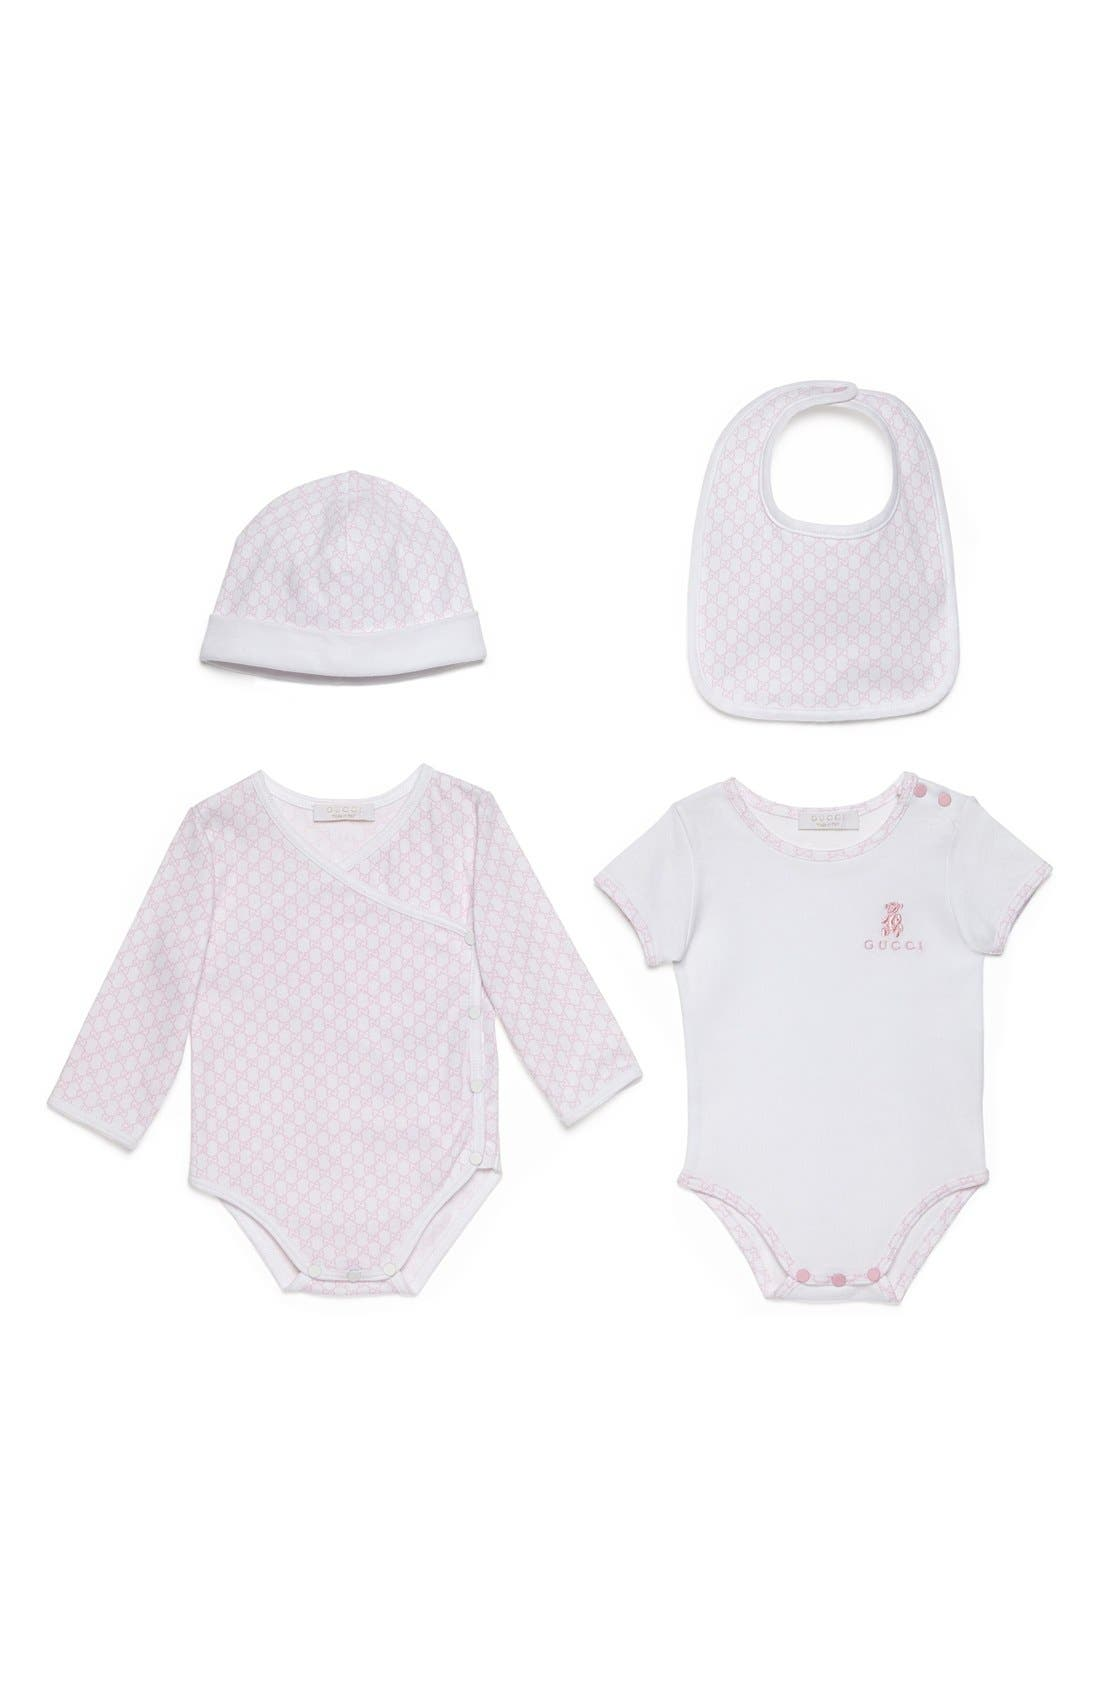 GUCCI Short Sleeve Bodysuit, Long Sleeve Bodysuit, Hat & Bib Set